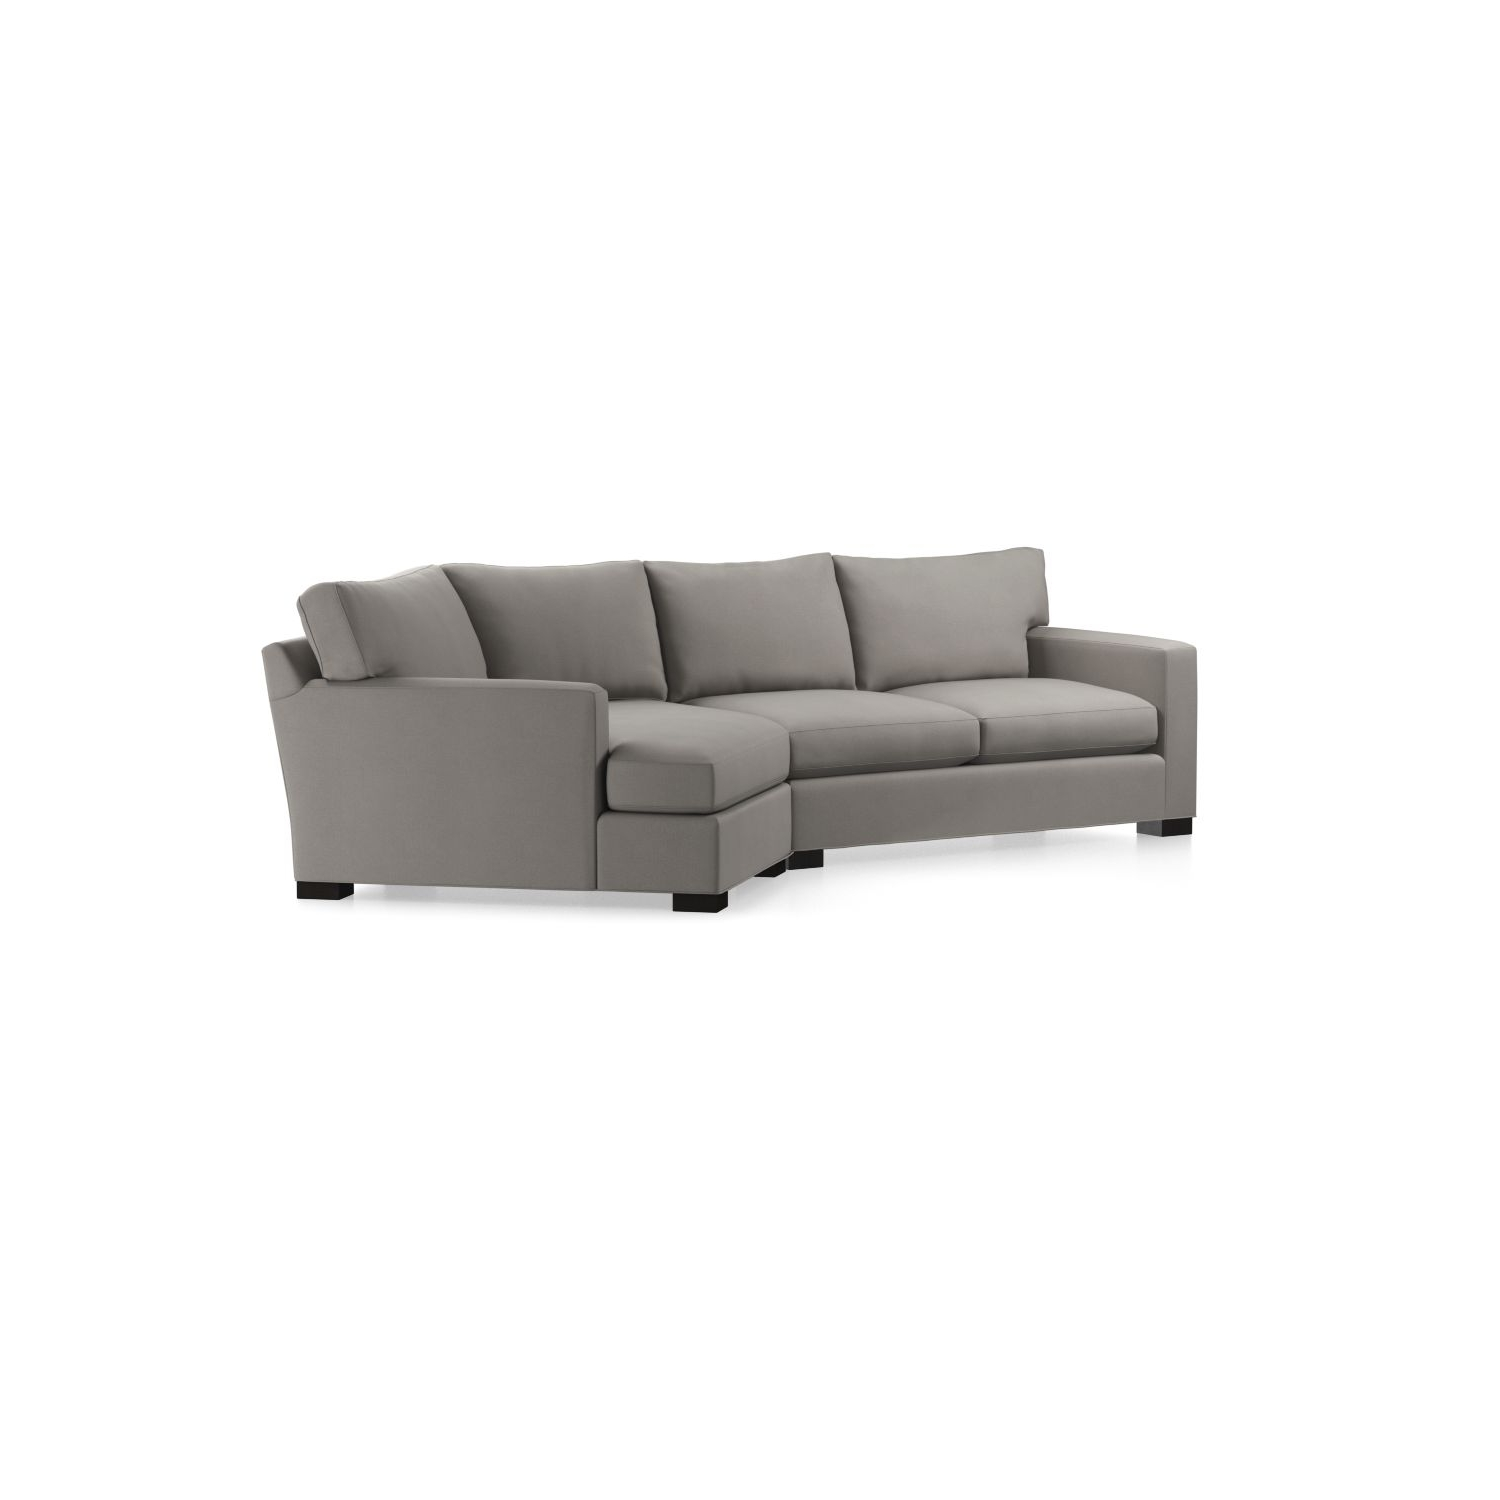 Angled Chaise Sofas For Most Current Axis Ii 2 Piece Right Arm Angled Chaise Sectional Sofa In Axis (View 8 of 20)